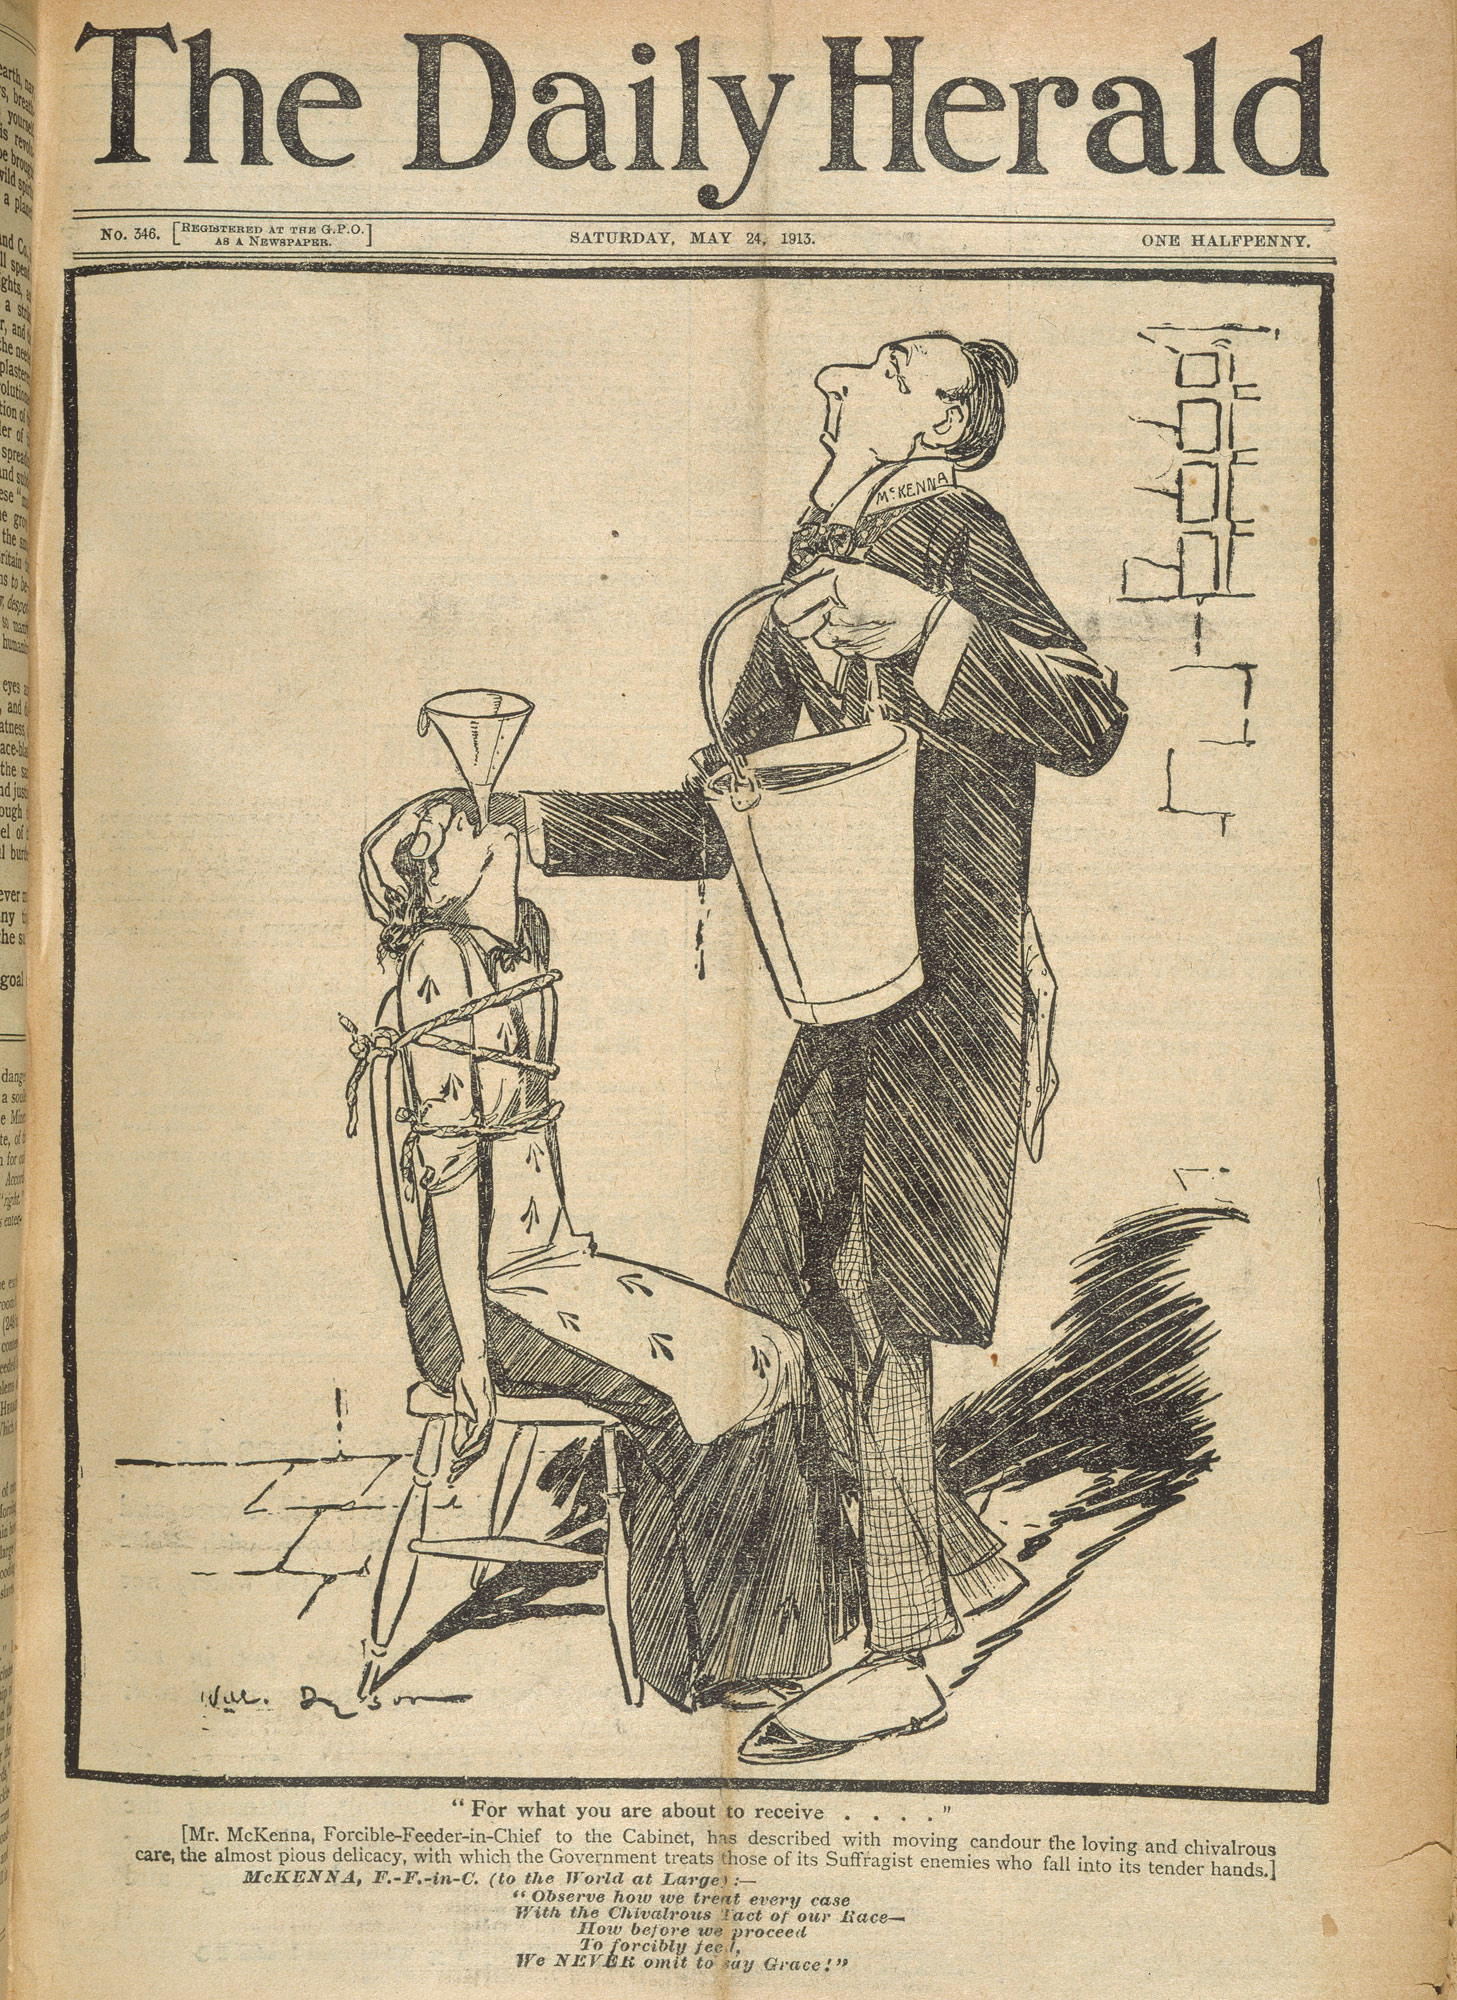 Illustration depicts Asquith force-feeding an imprisoned suffragette